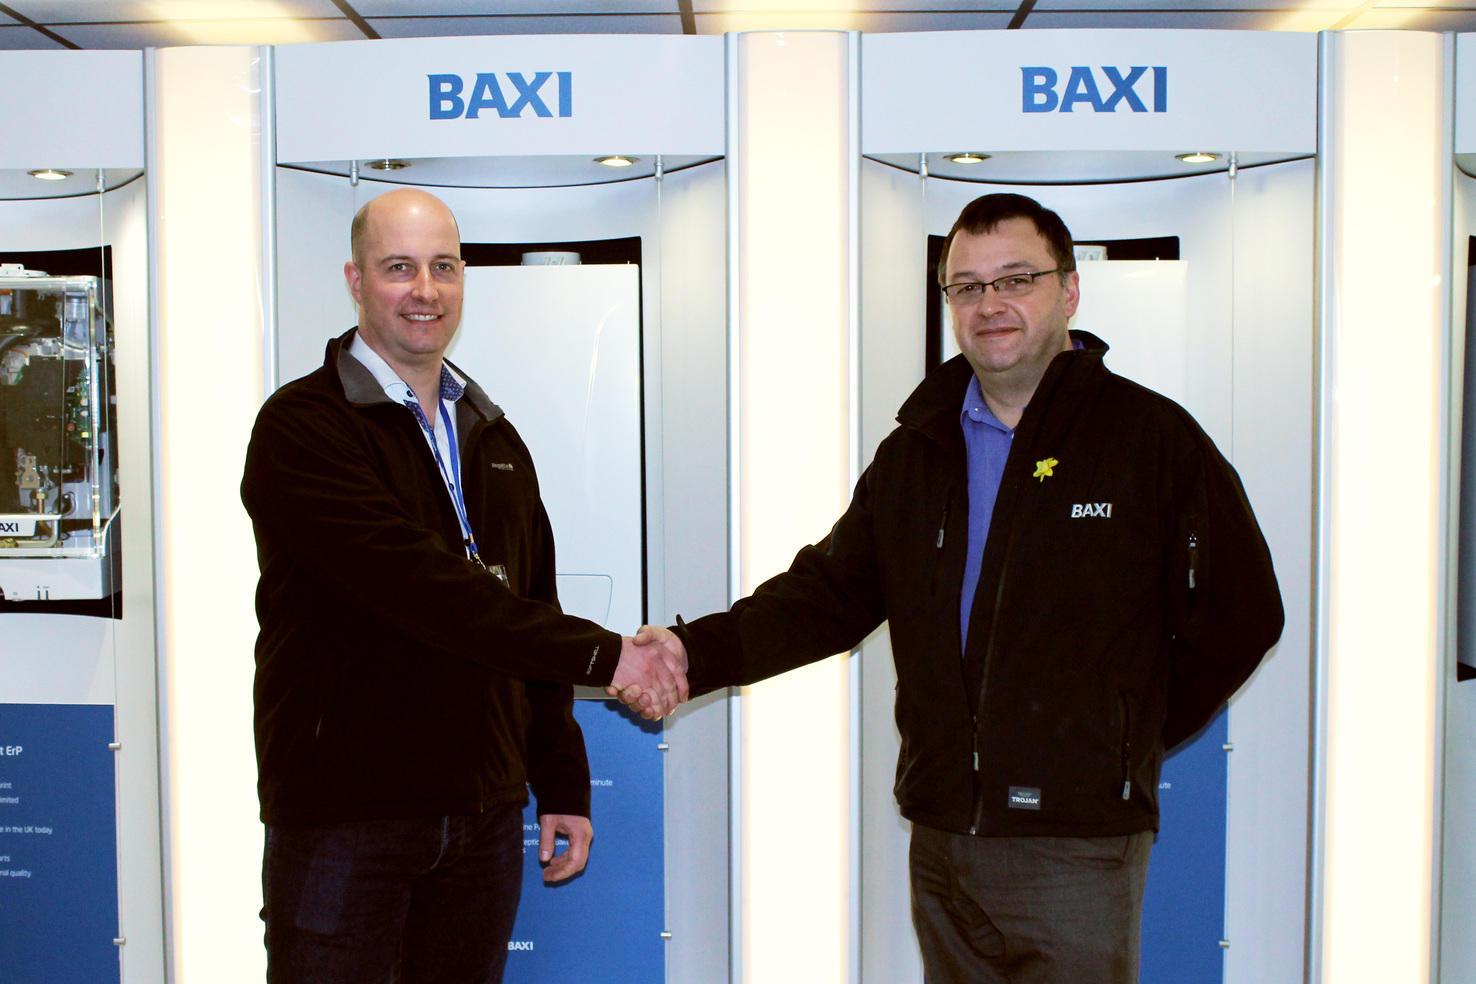 Baxi in the UK chooses automation from AP&T